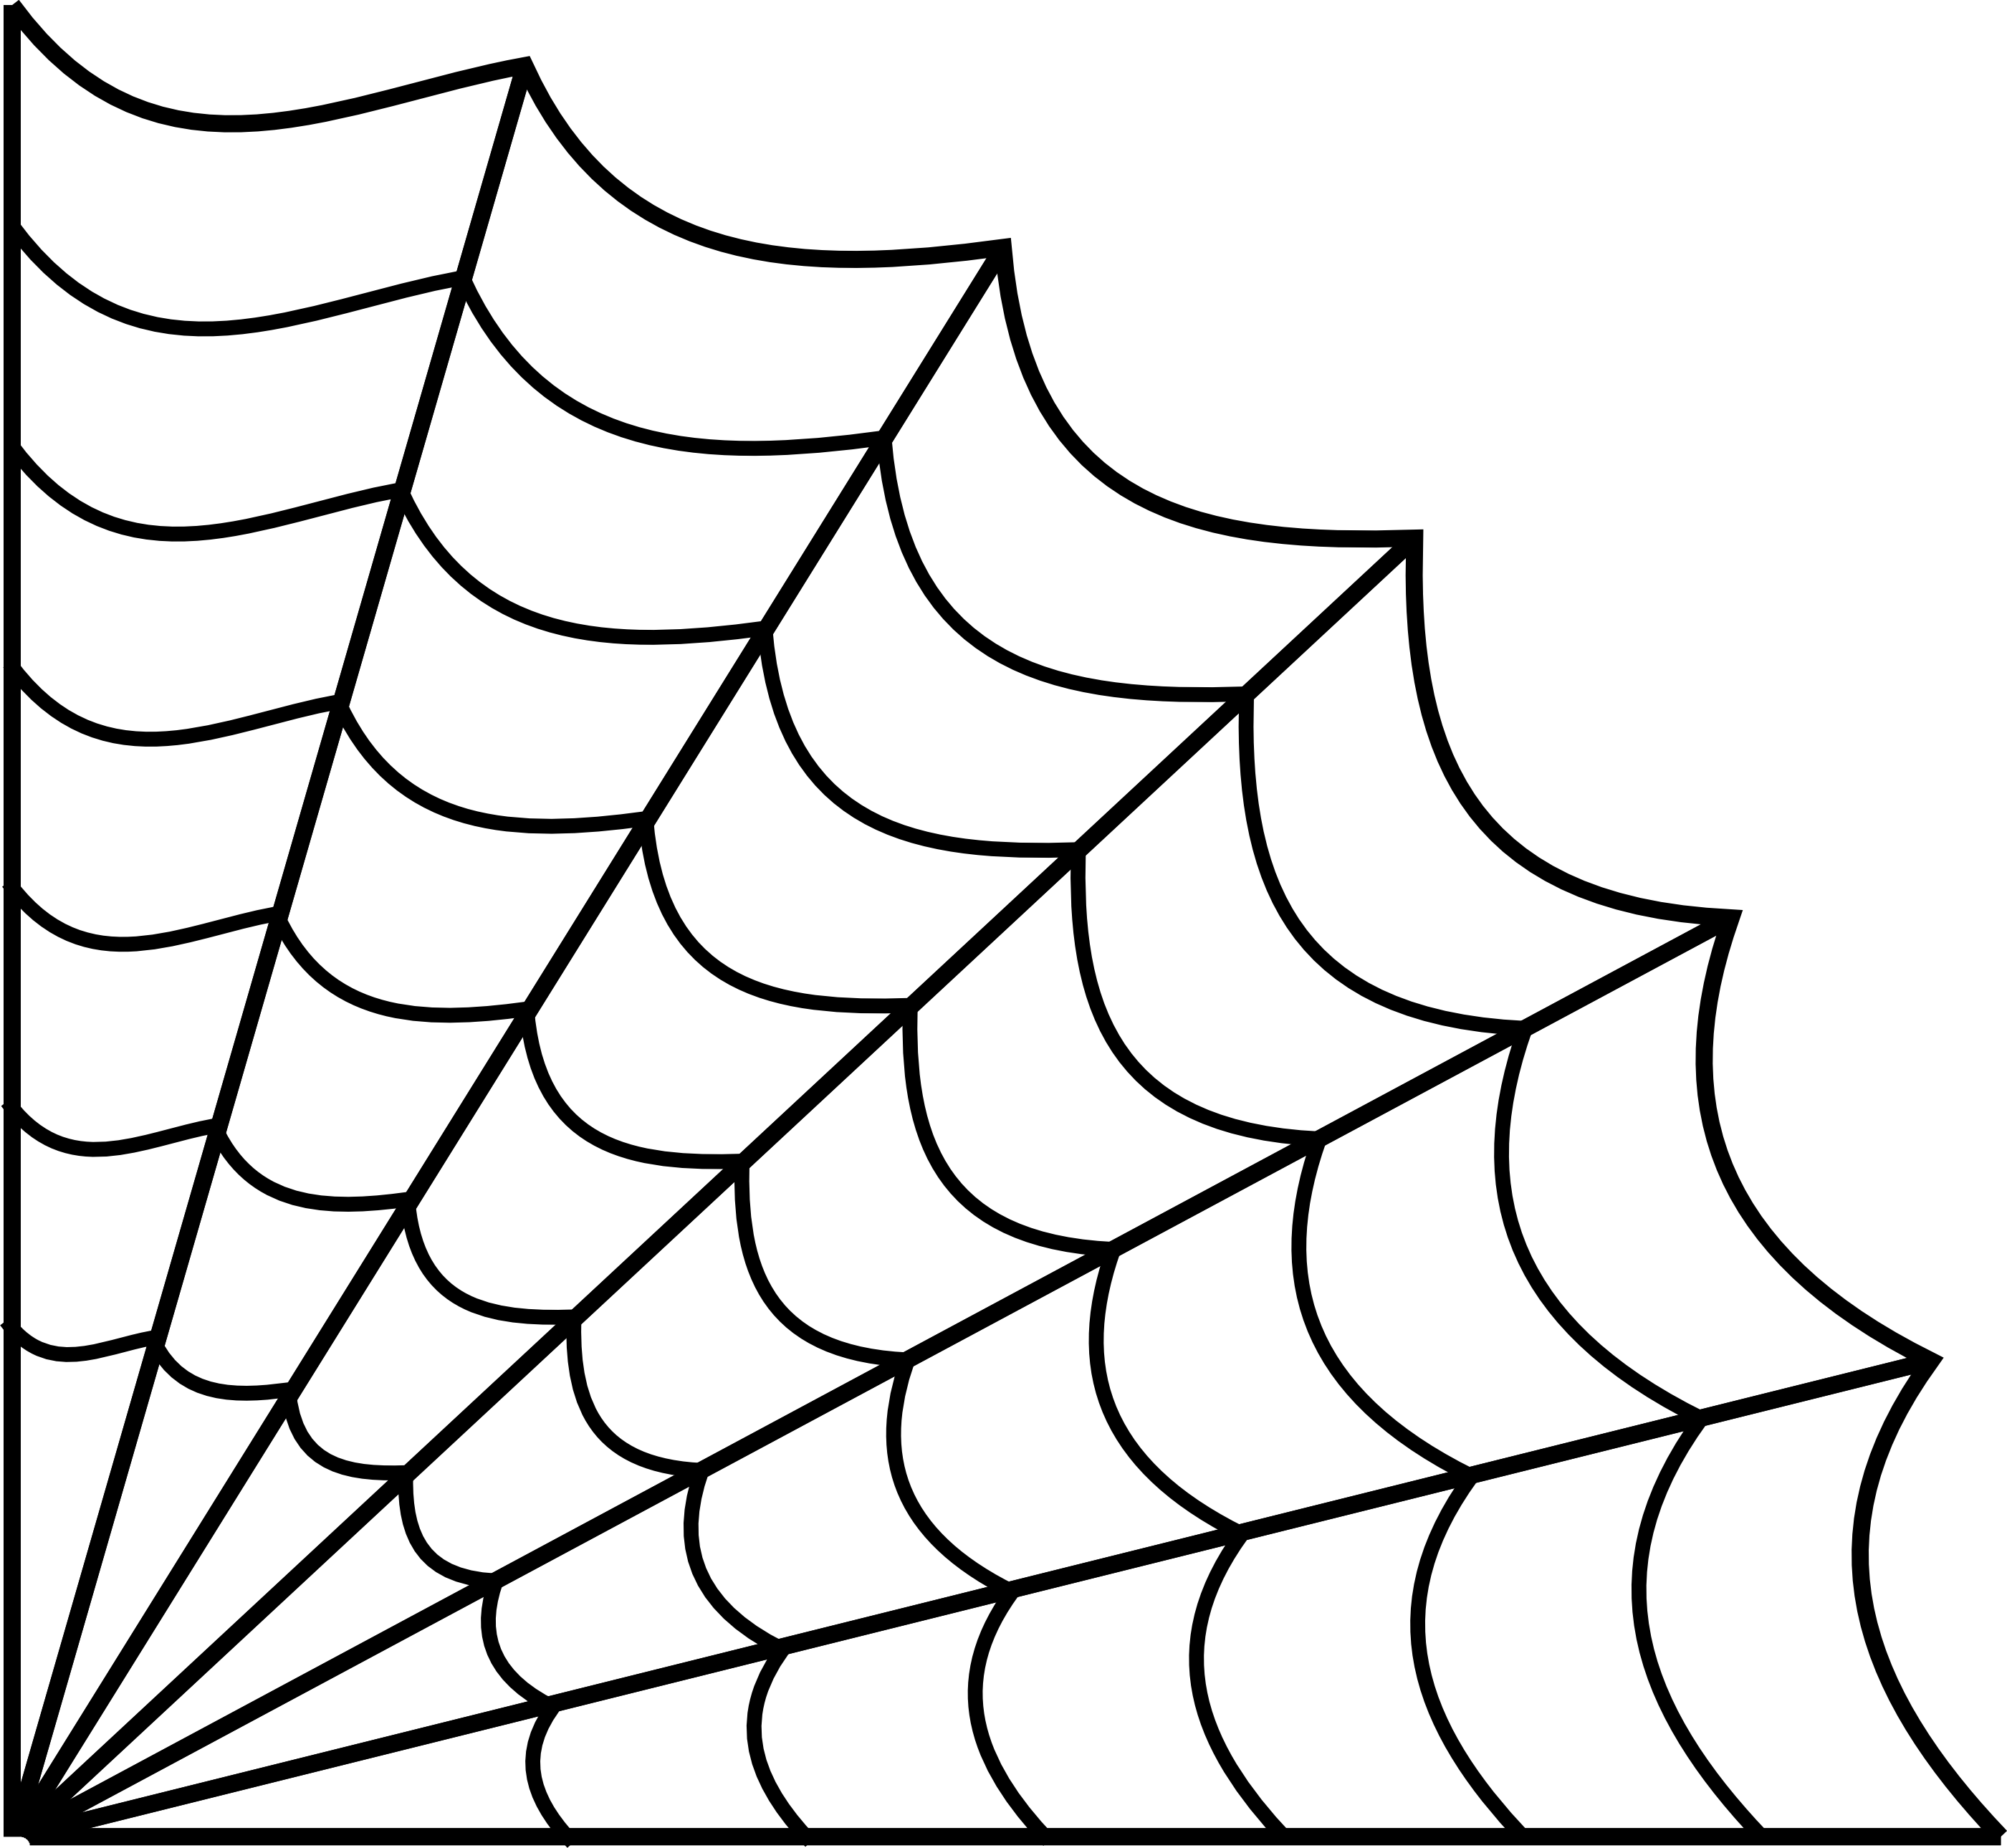 Spider web corner png transparent background. Collection of drawing